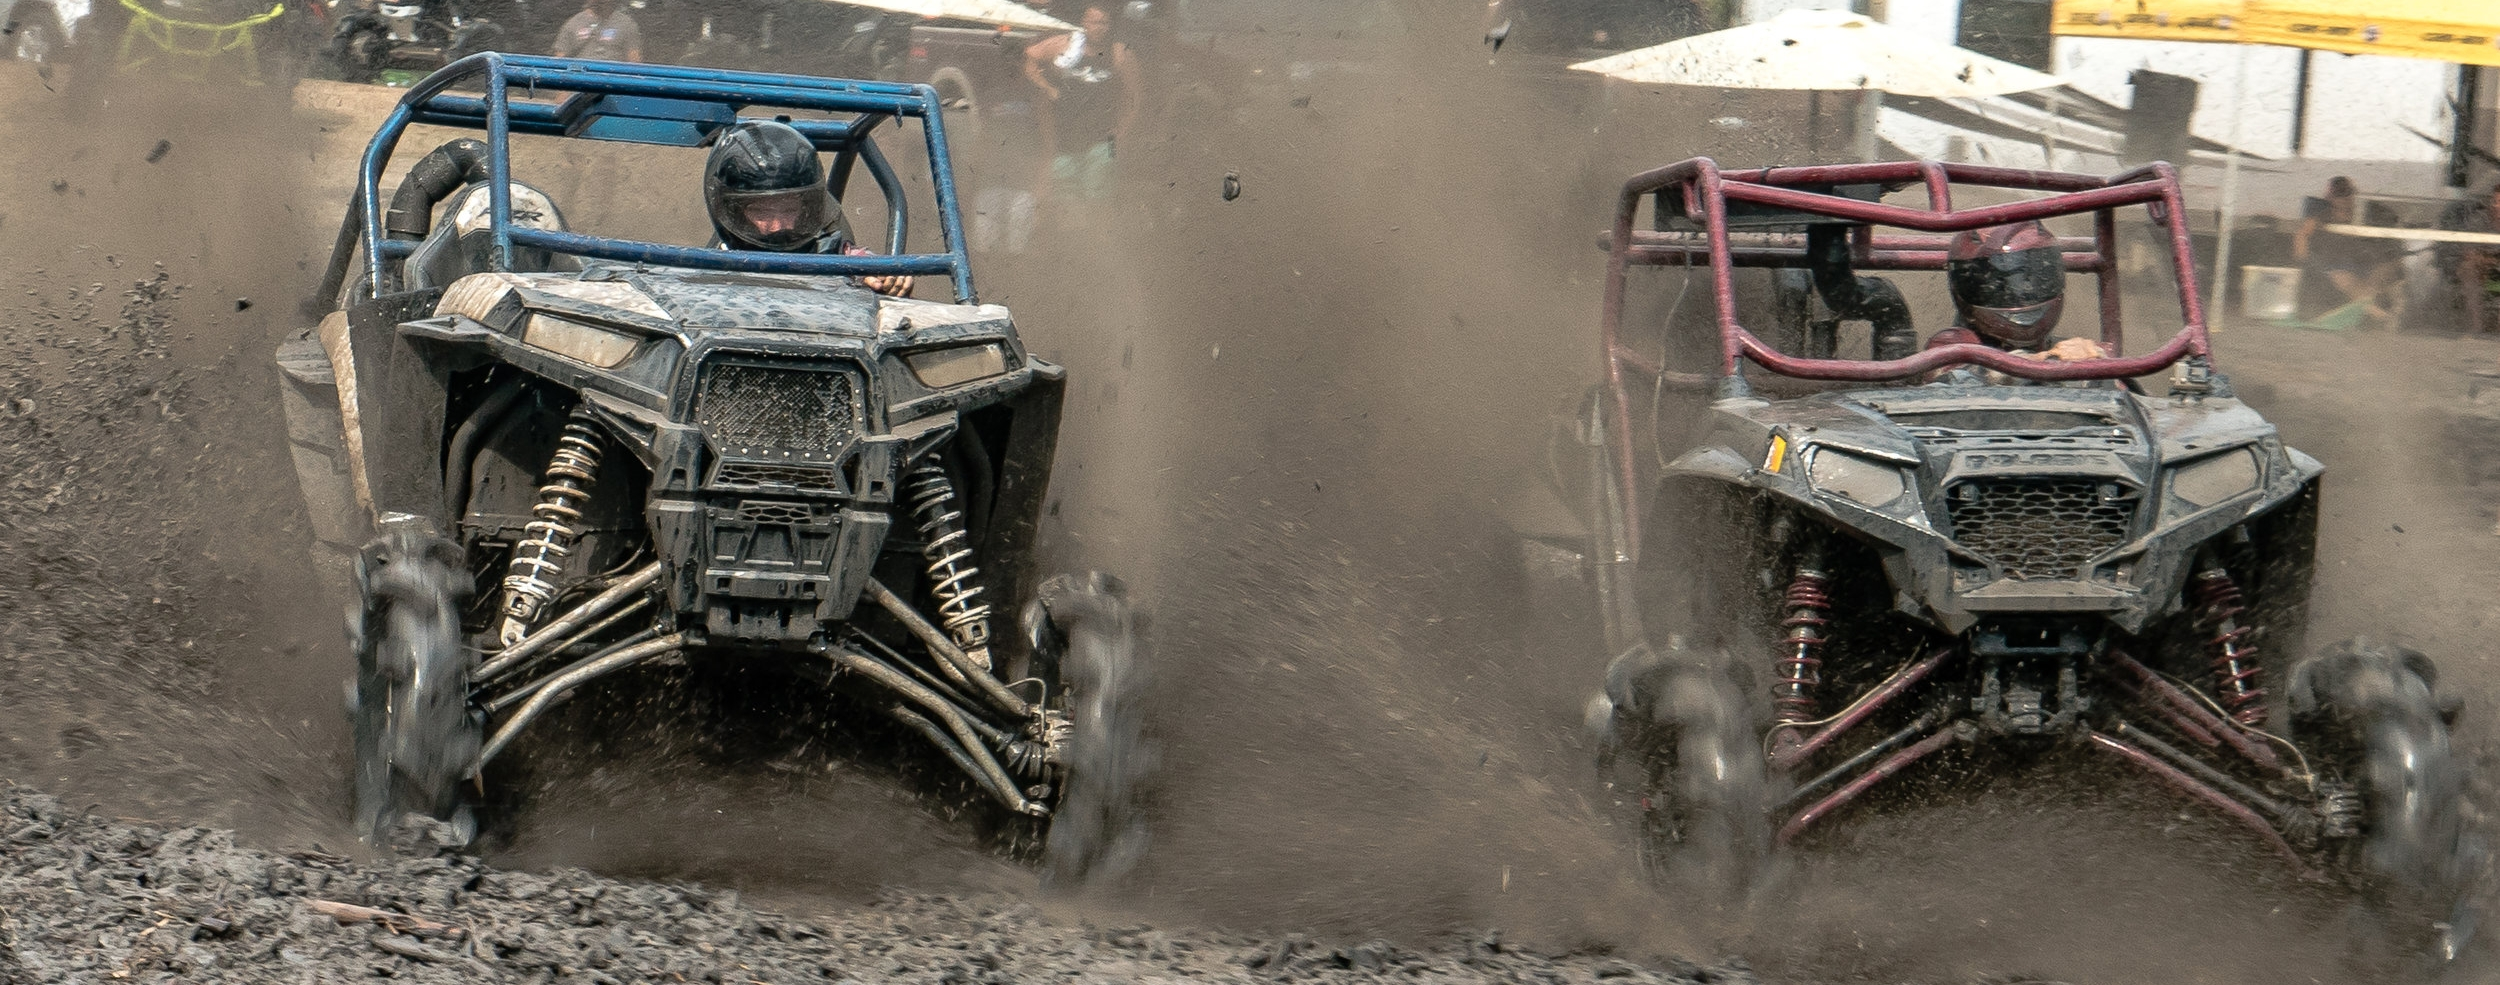 3P Offroad